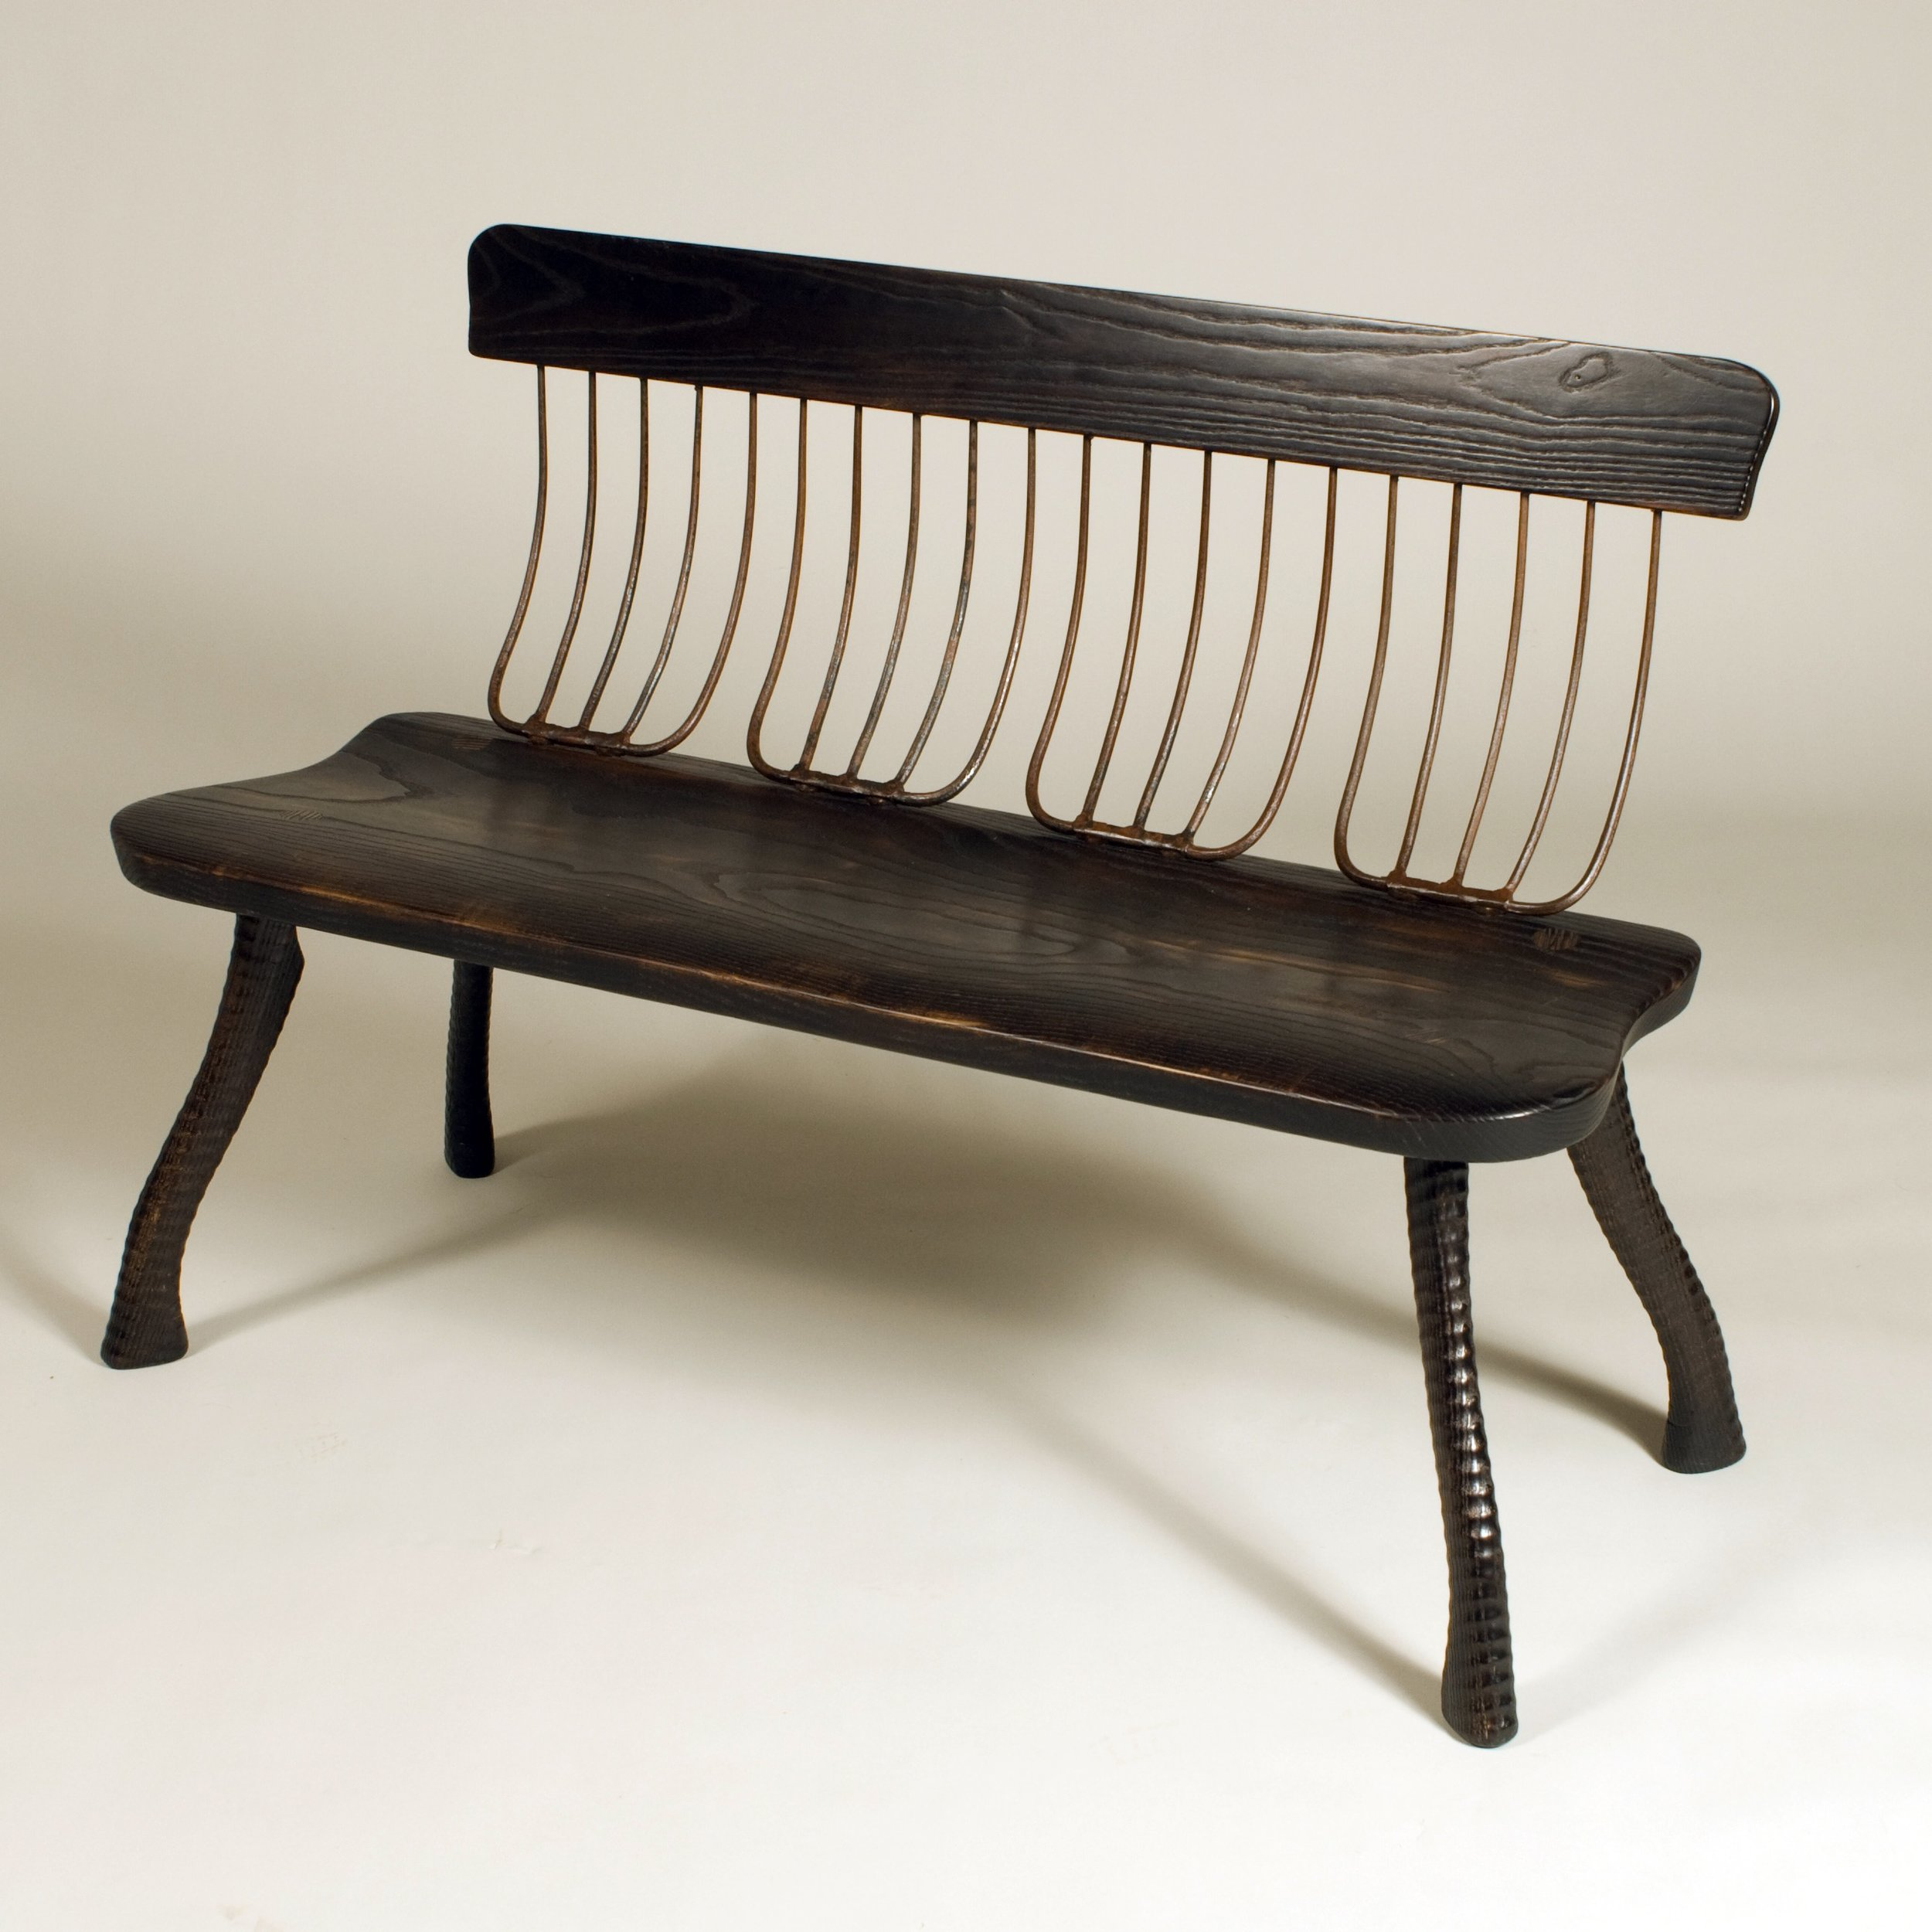 bench-3-forker-charred-008.jpg